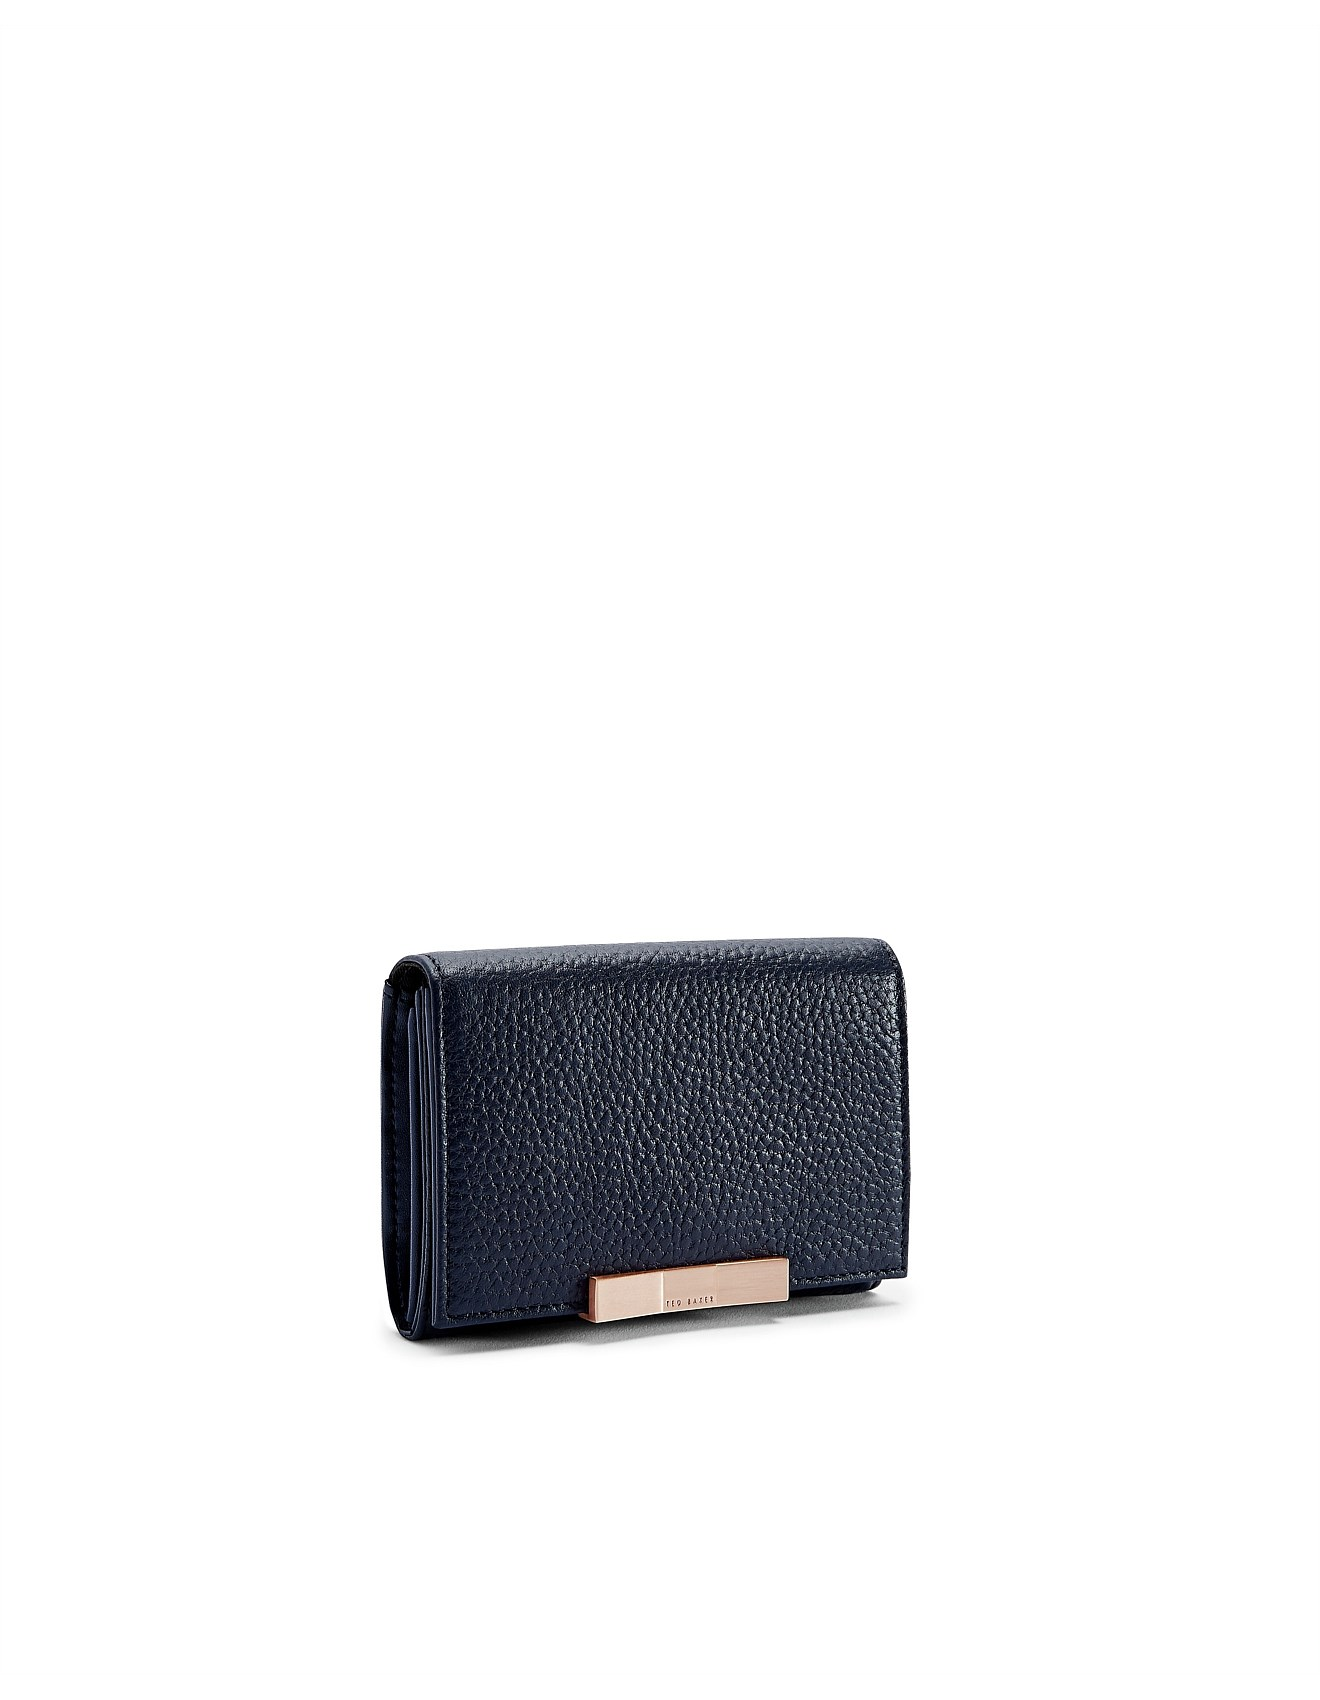 36e7a637eb5 Ted Baker | Buy Ted Baker Clothing, Bags & More | David Jones - TEXTURED  MINI PURSE